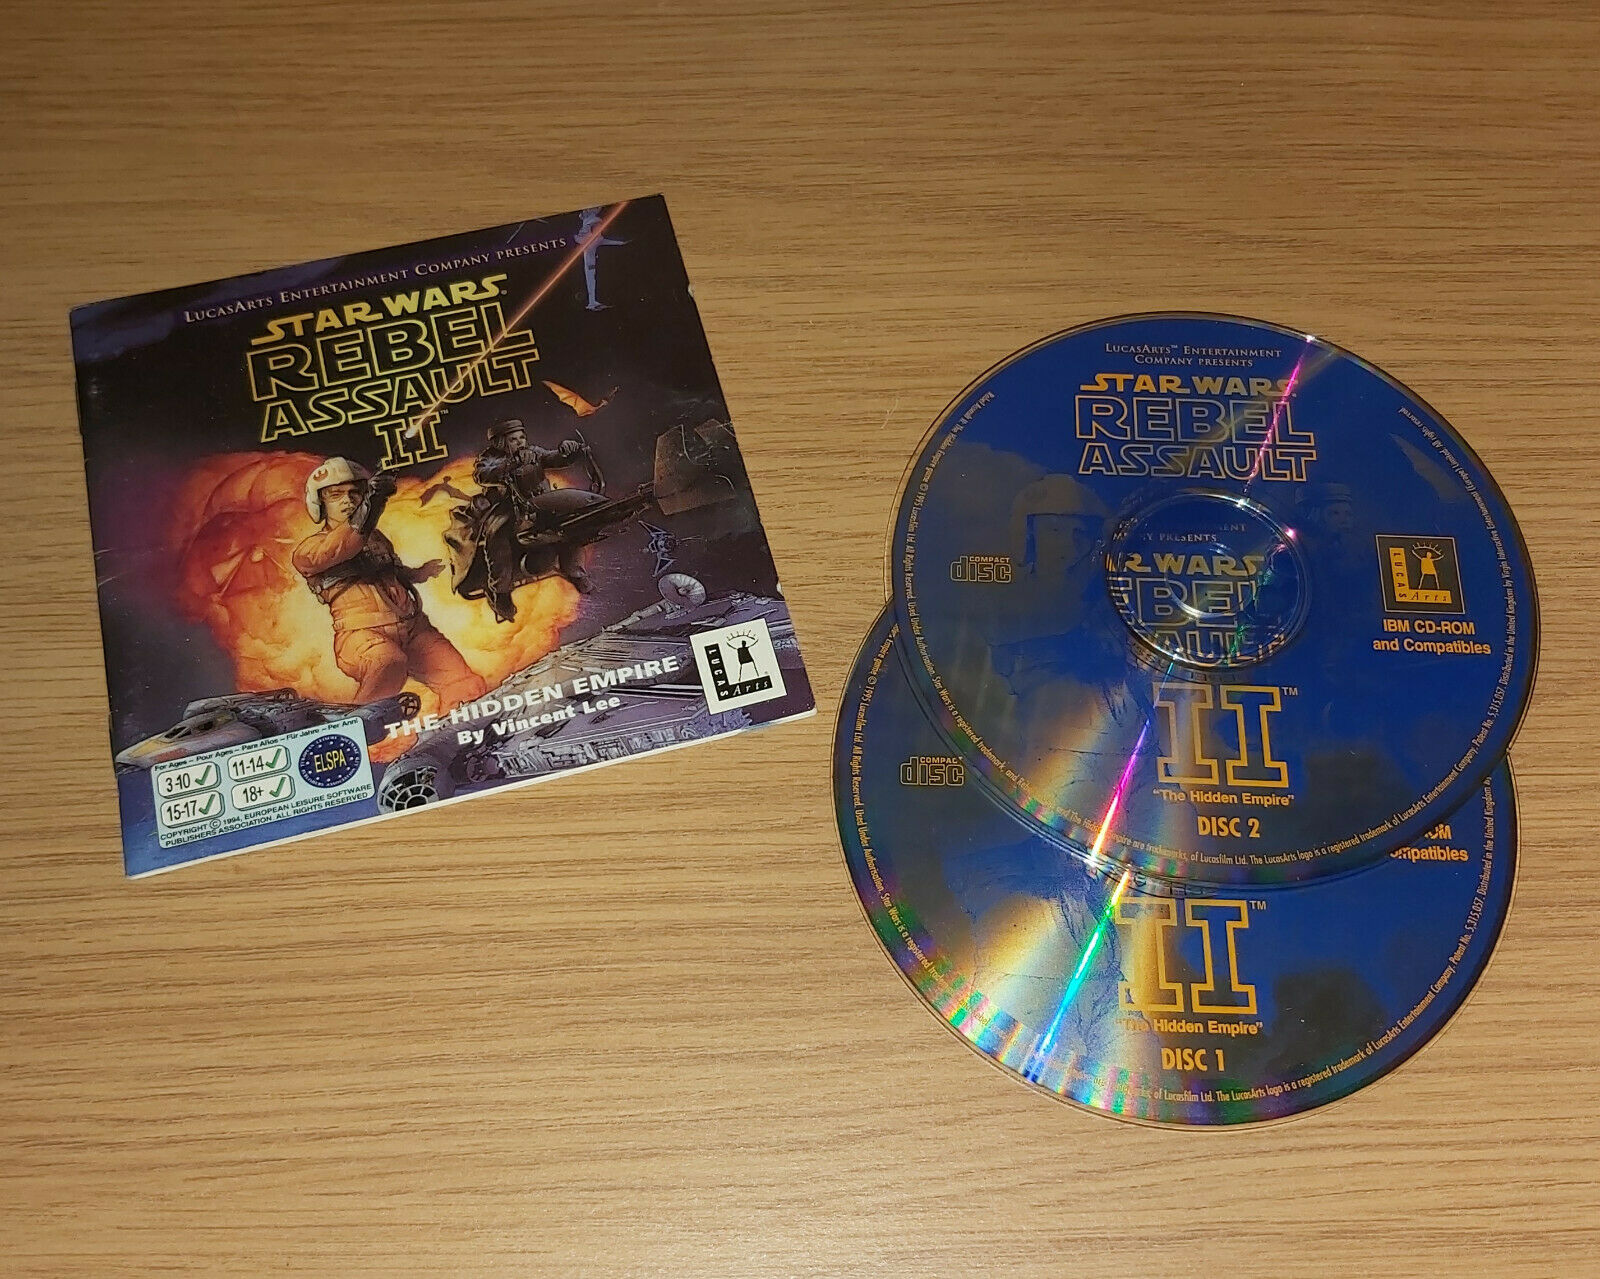 Star Wars Rebel Assault II 2 PC CD Game 1995 - pas cher StarWars